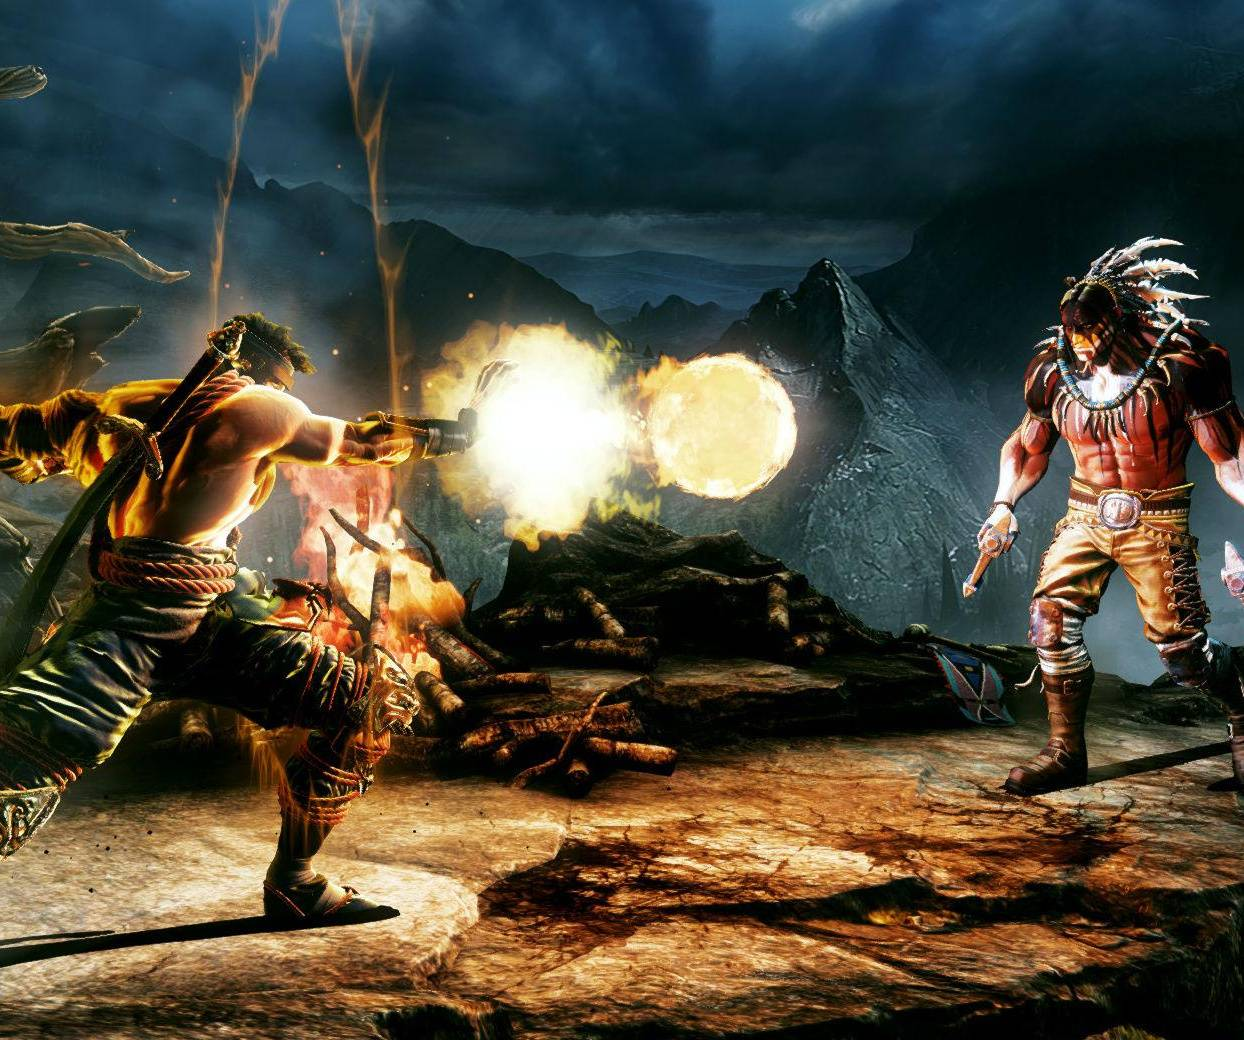 Jago vs Thunder